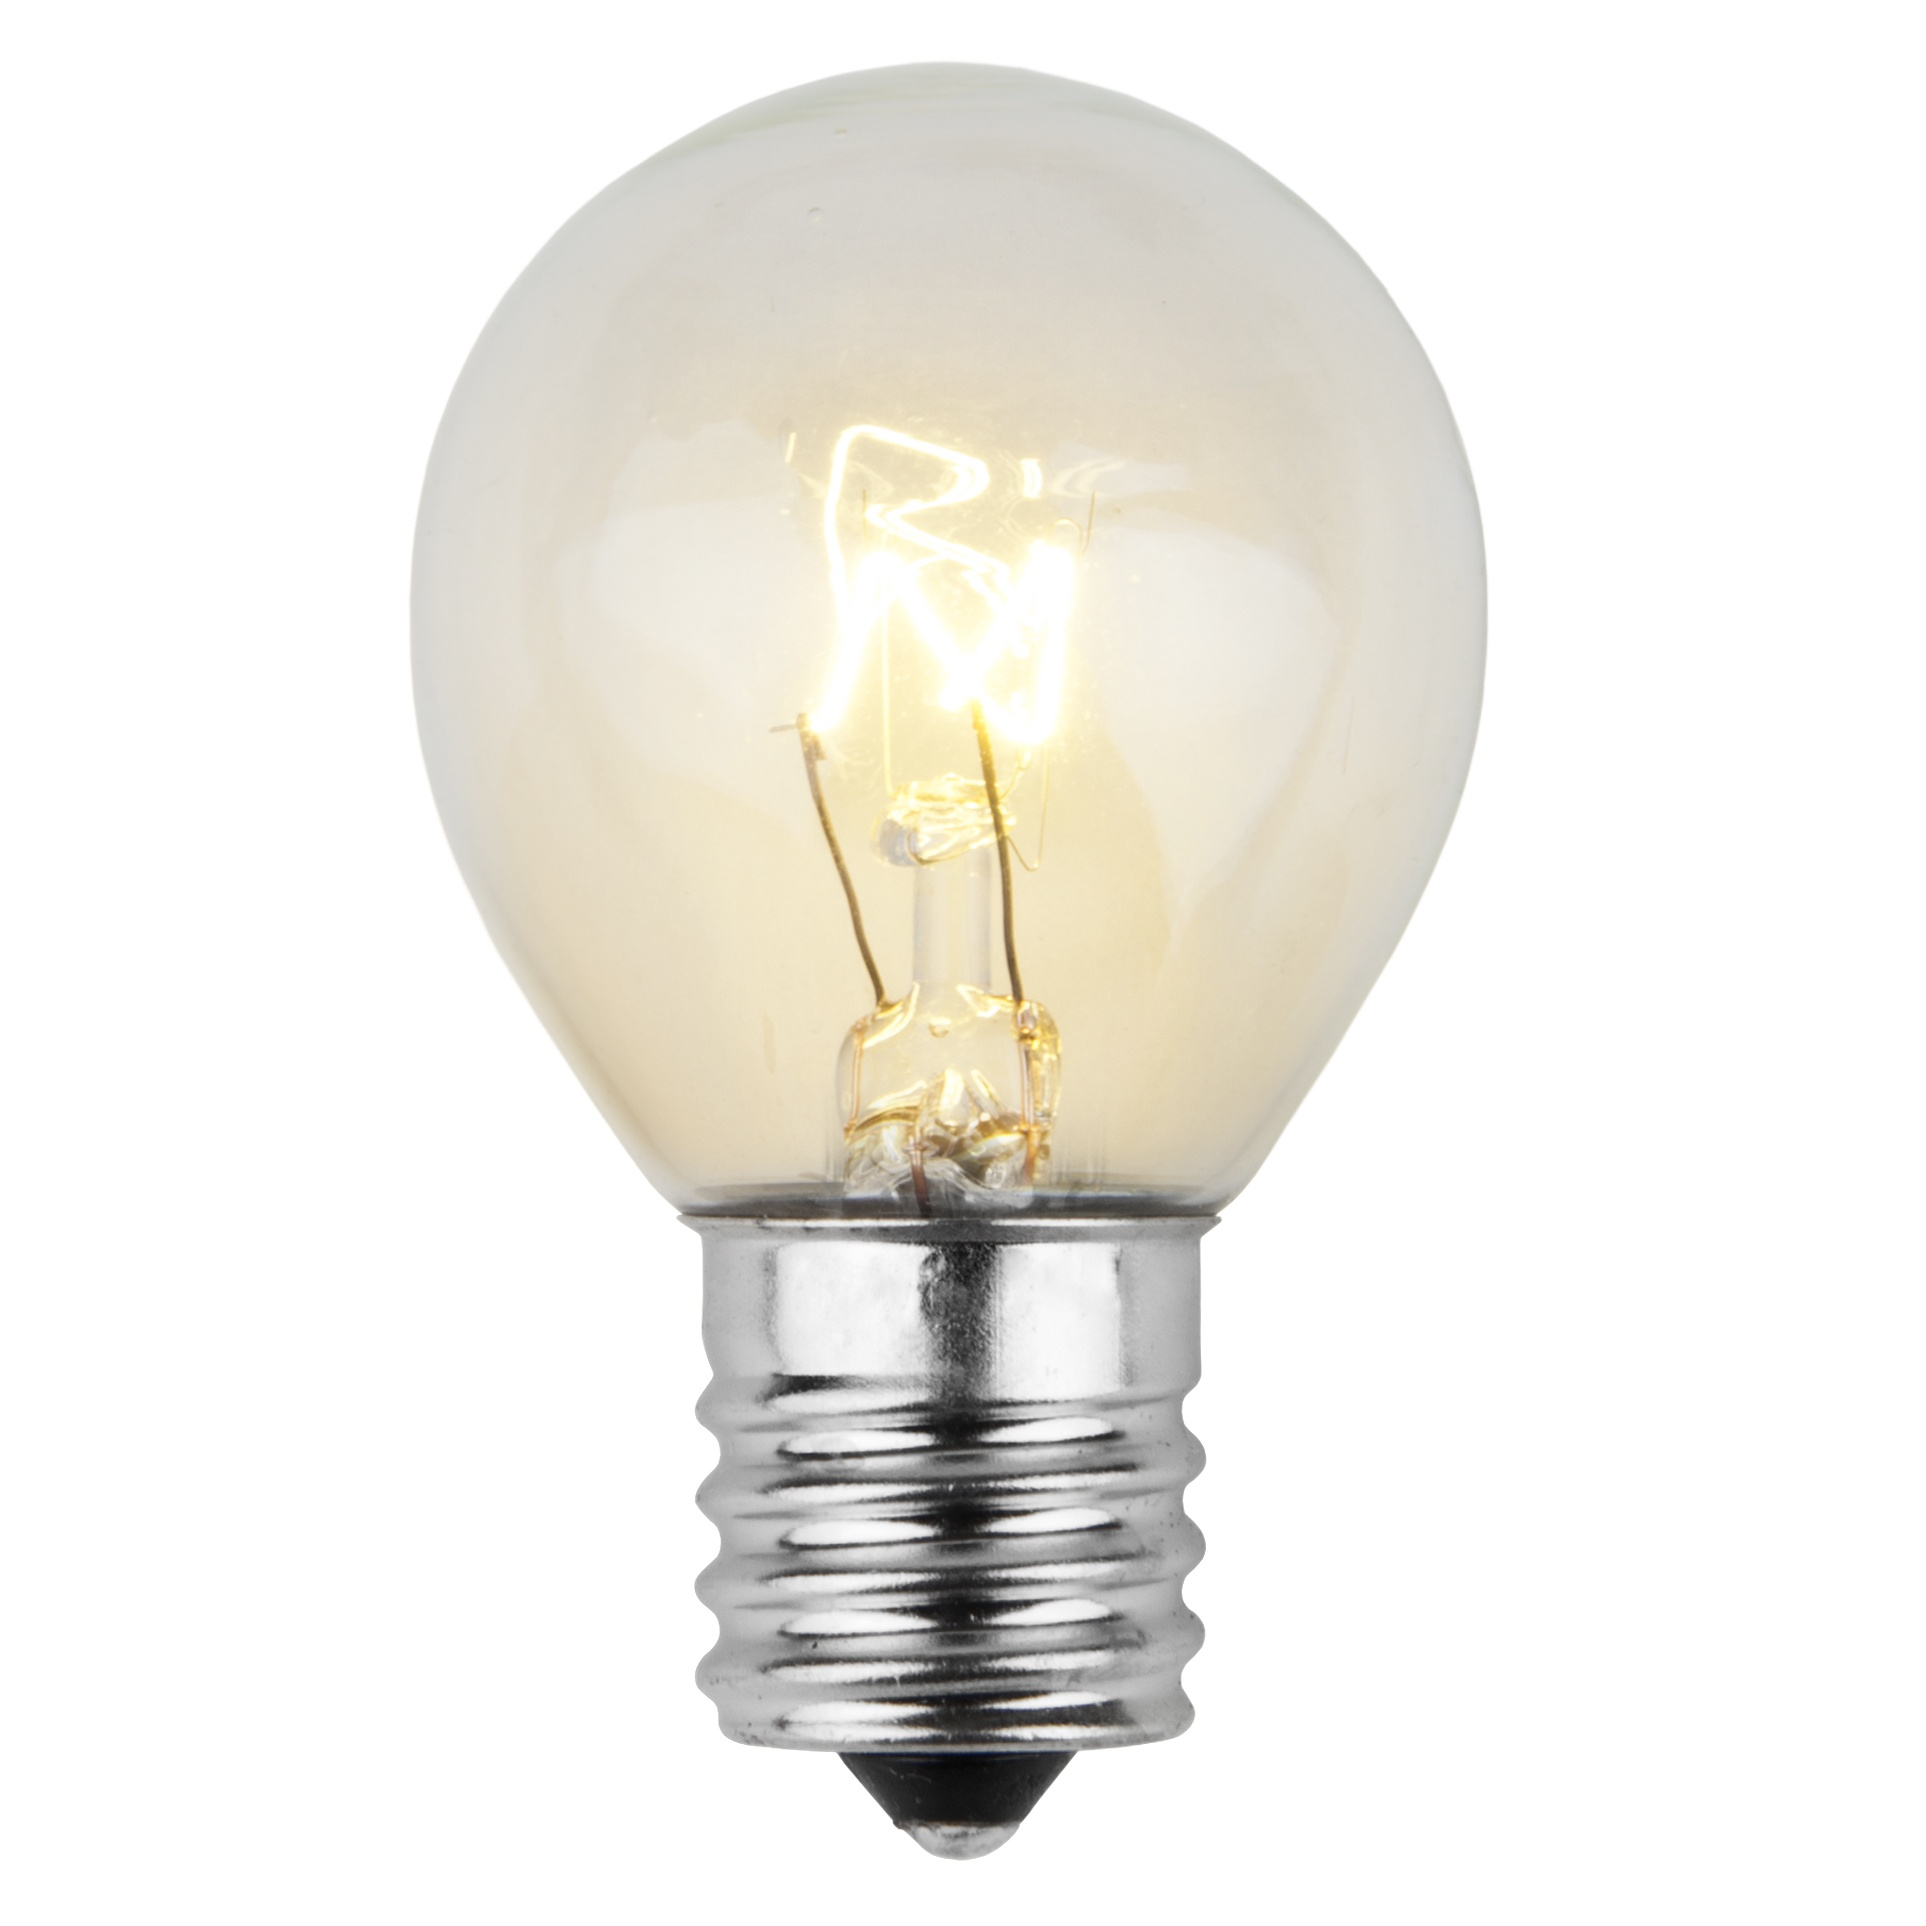 "replacing any bulb with an LED every time when a bulb burns out even though existing stock of incandescent still exists. using up existing bulbs first before buying any new LED. employing a replacement strategy based on ""use frequency"" of sockets."